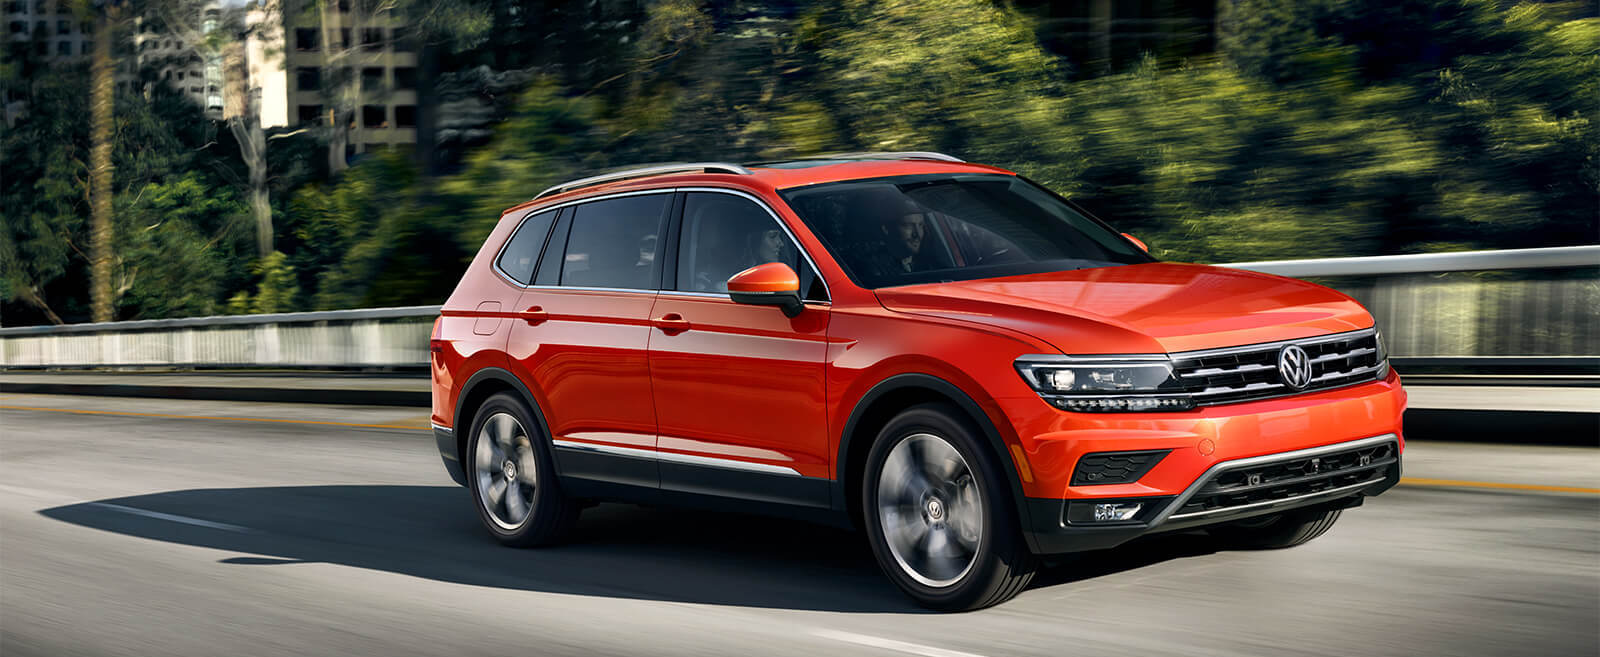 2019 Volkswagen Tiguan for Sale near Cape May Court House, NJ